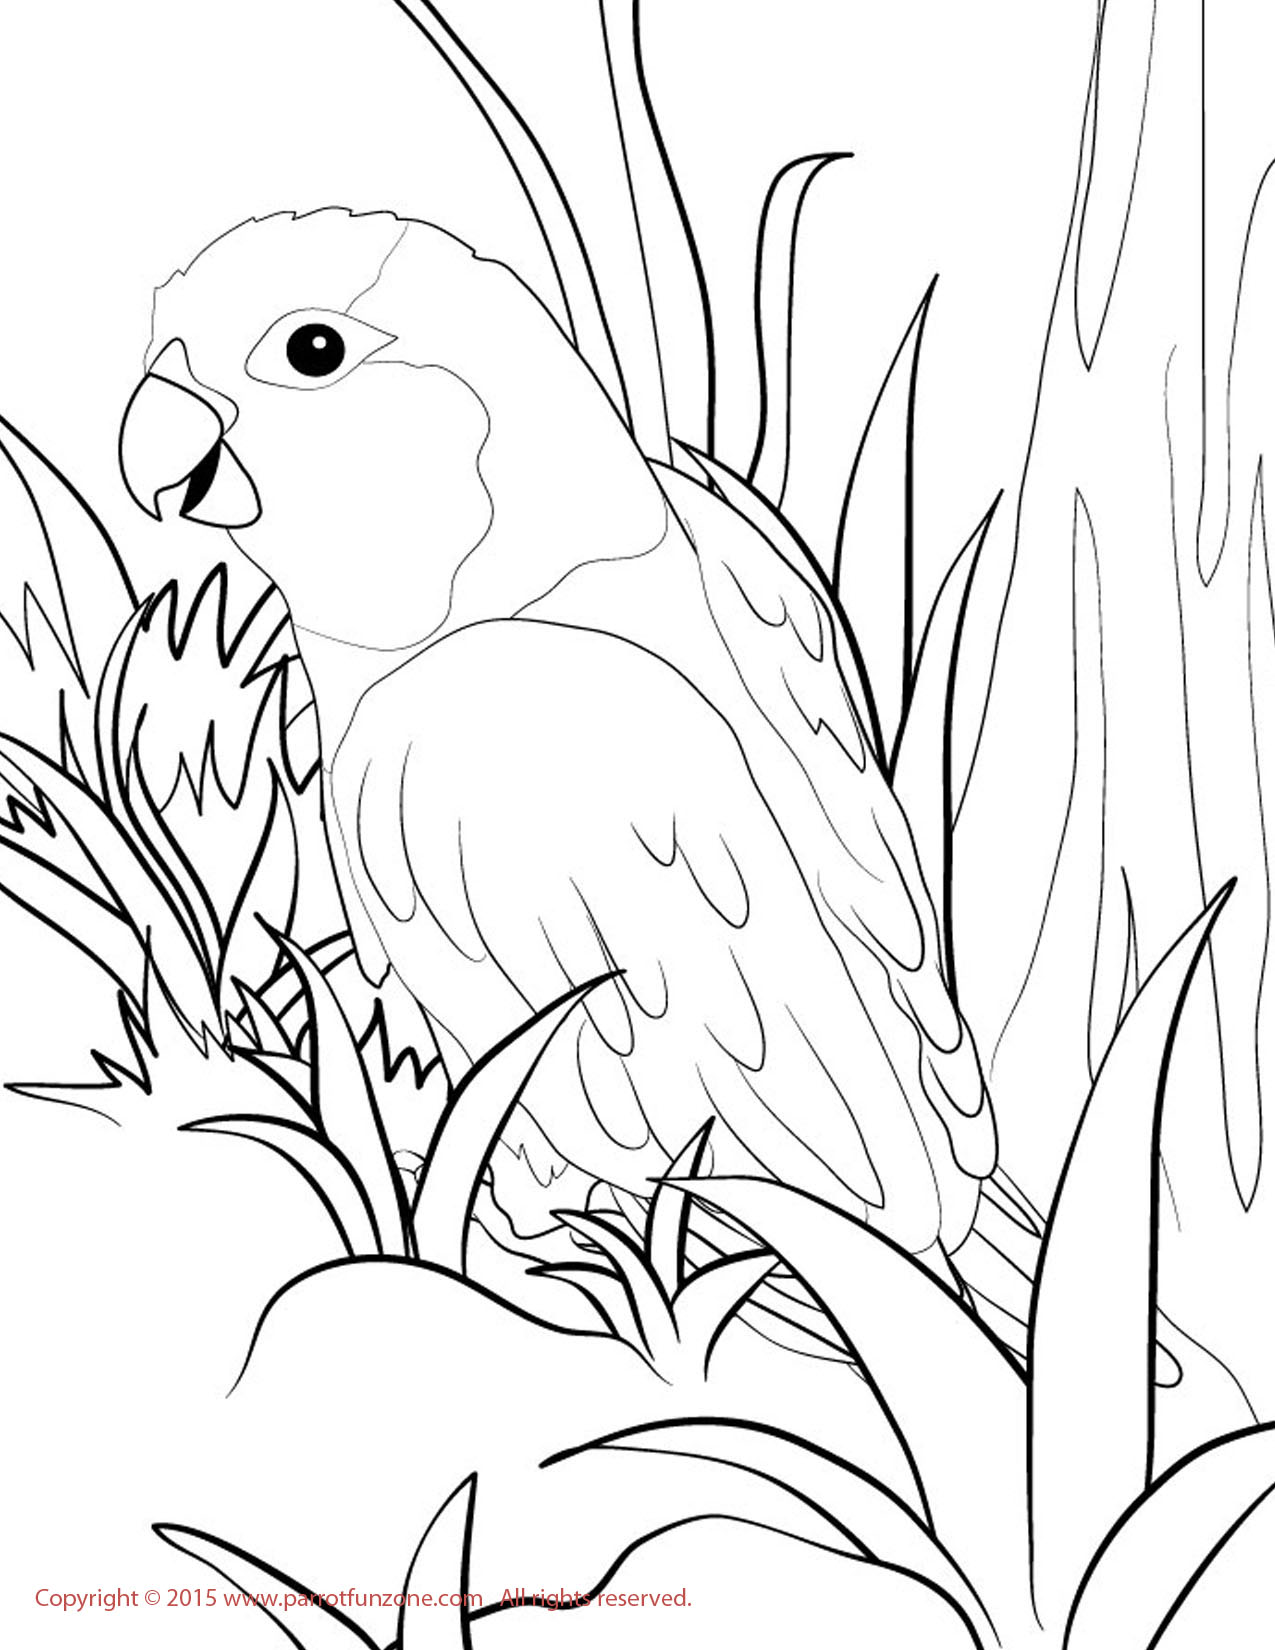 sun conure coloring page sun conure drawing at getdrawings free download conure coloring sun page